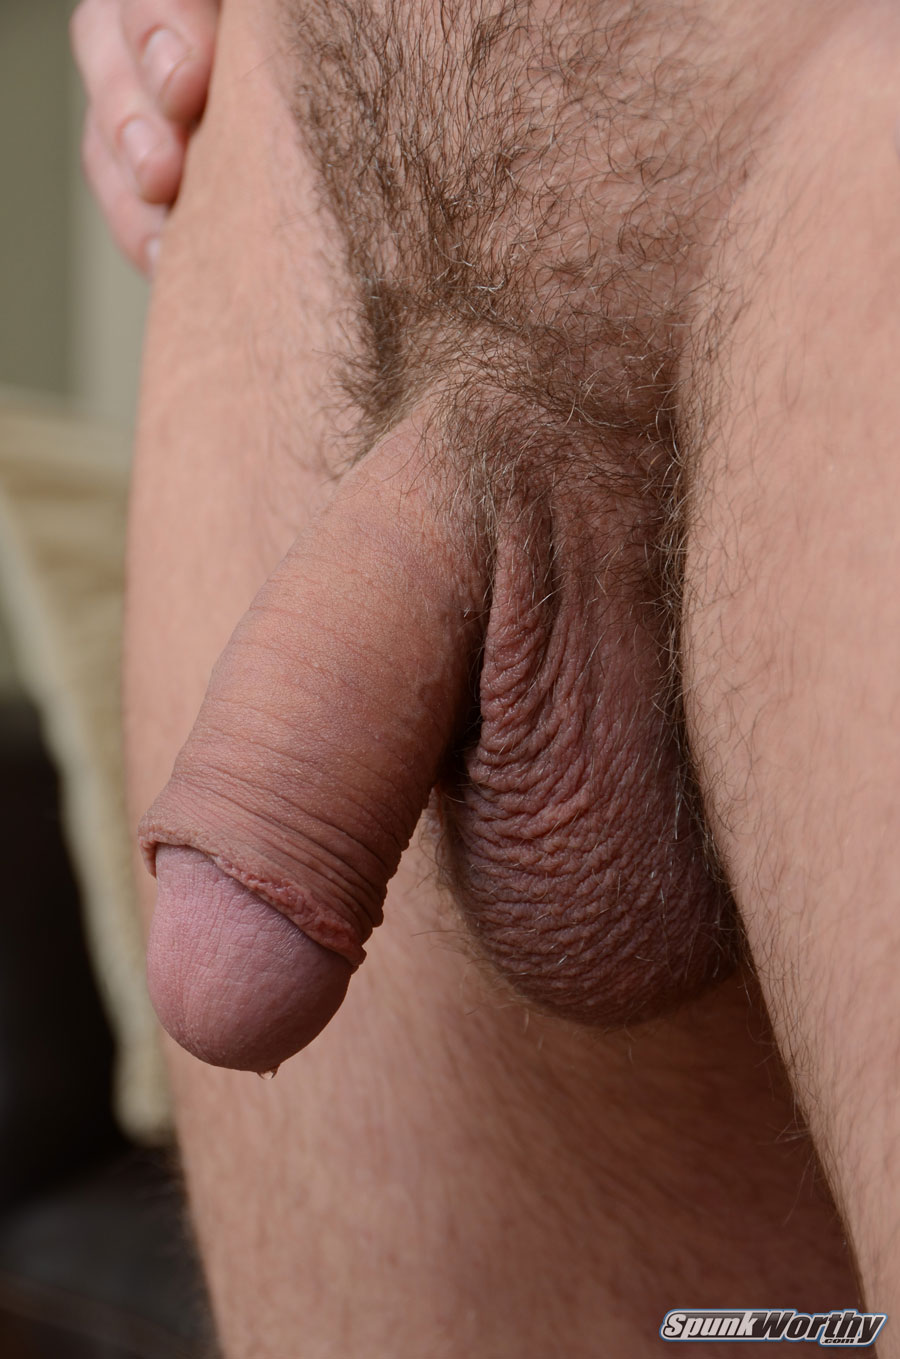 SpunkWorthy-Eli-Straight-Marine-With-Big-Uncut-Cock-Masturbating-Jerking-Off-05 Real Straight Marine With Huge Uncut Cock Shoots His Cum Load